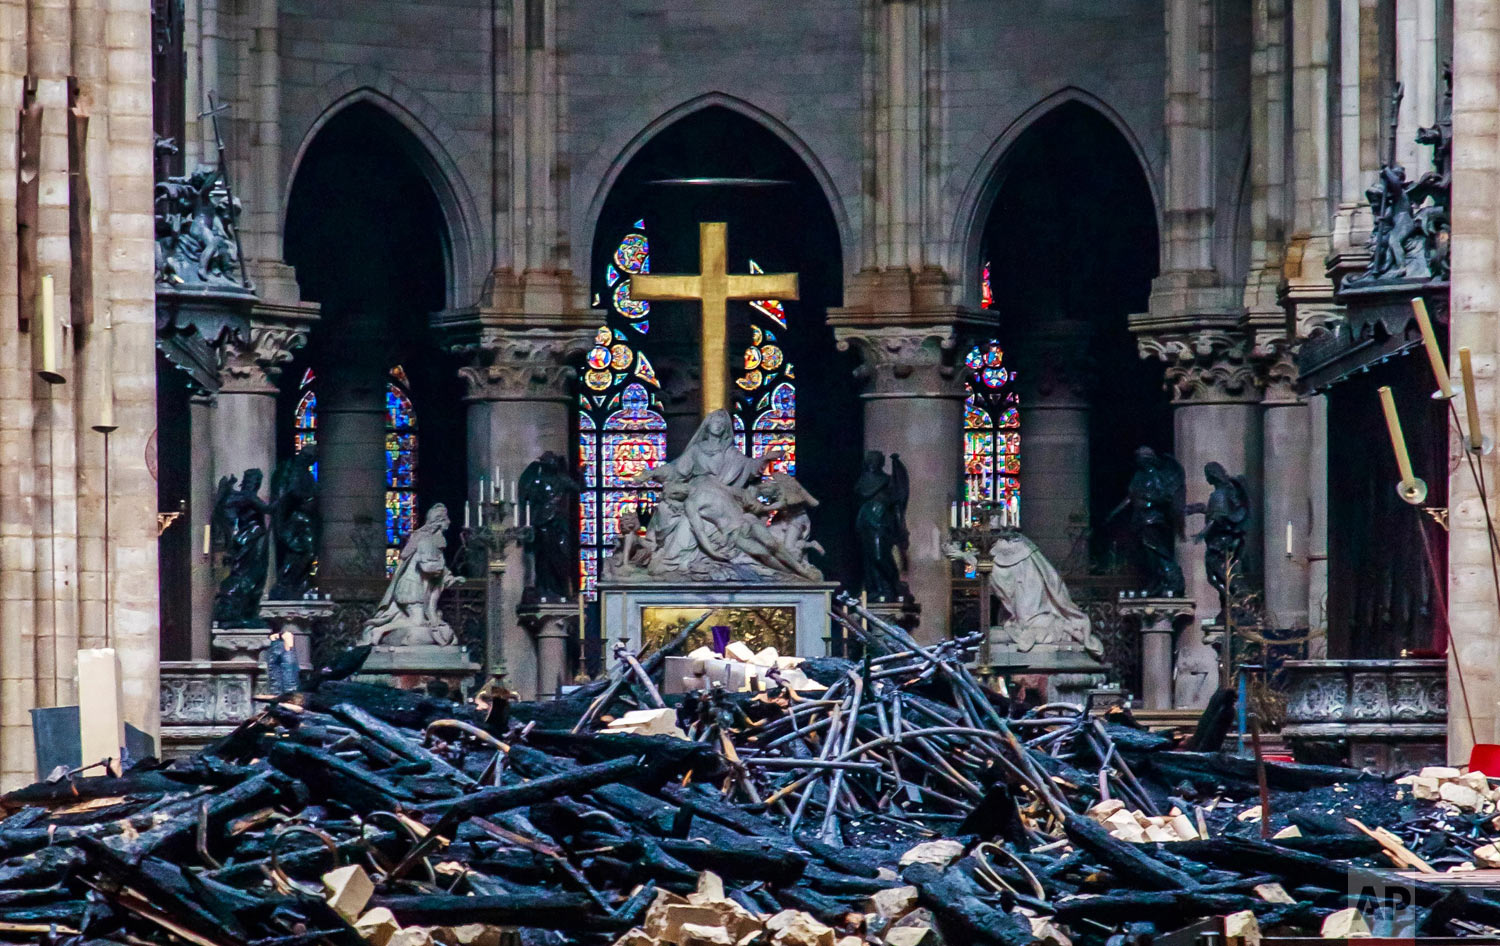 Debris covers the floor of the Notre Dame Cathedral in Paris, April 16, 2019. (Christophe Petit Tesson/Pool Photo via AP)